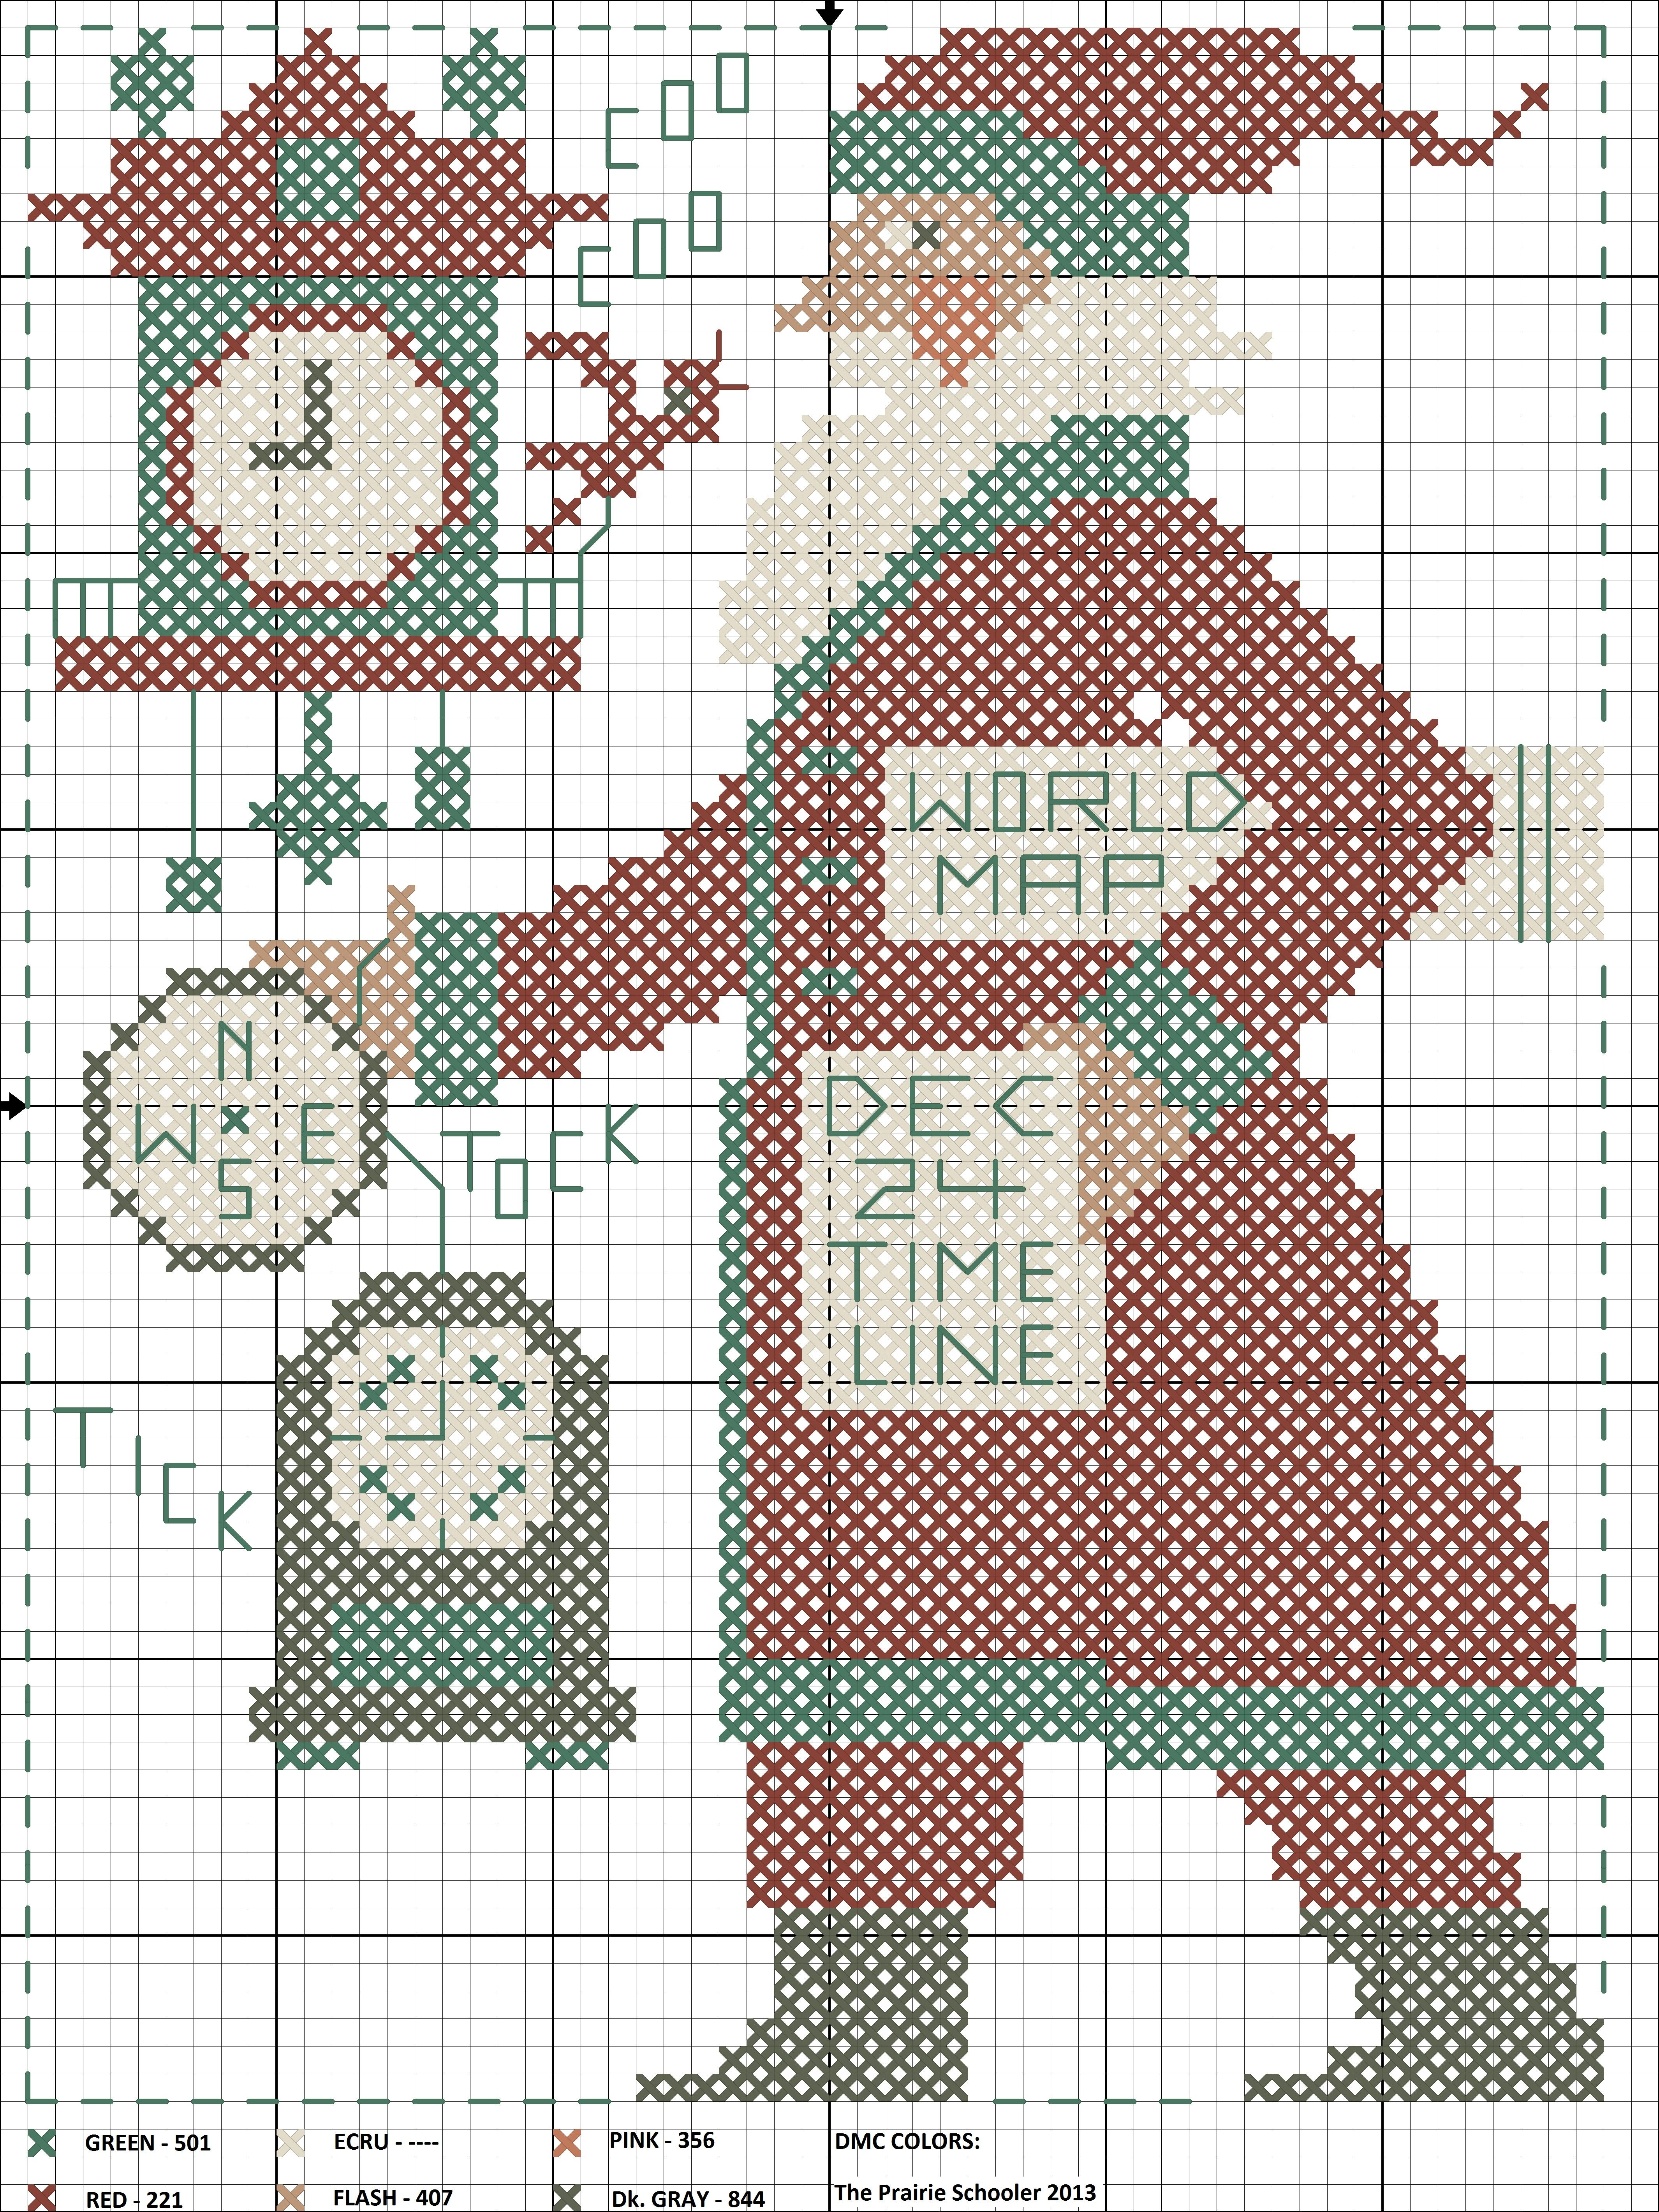 2020 Schooler Cross Stitch Chart